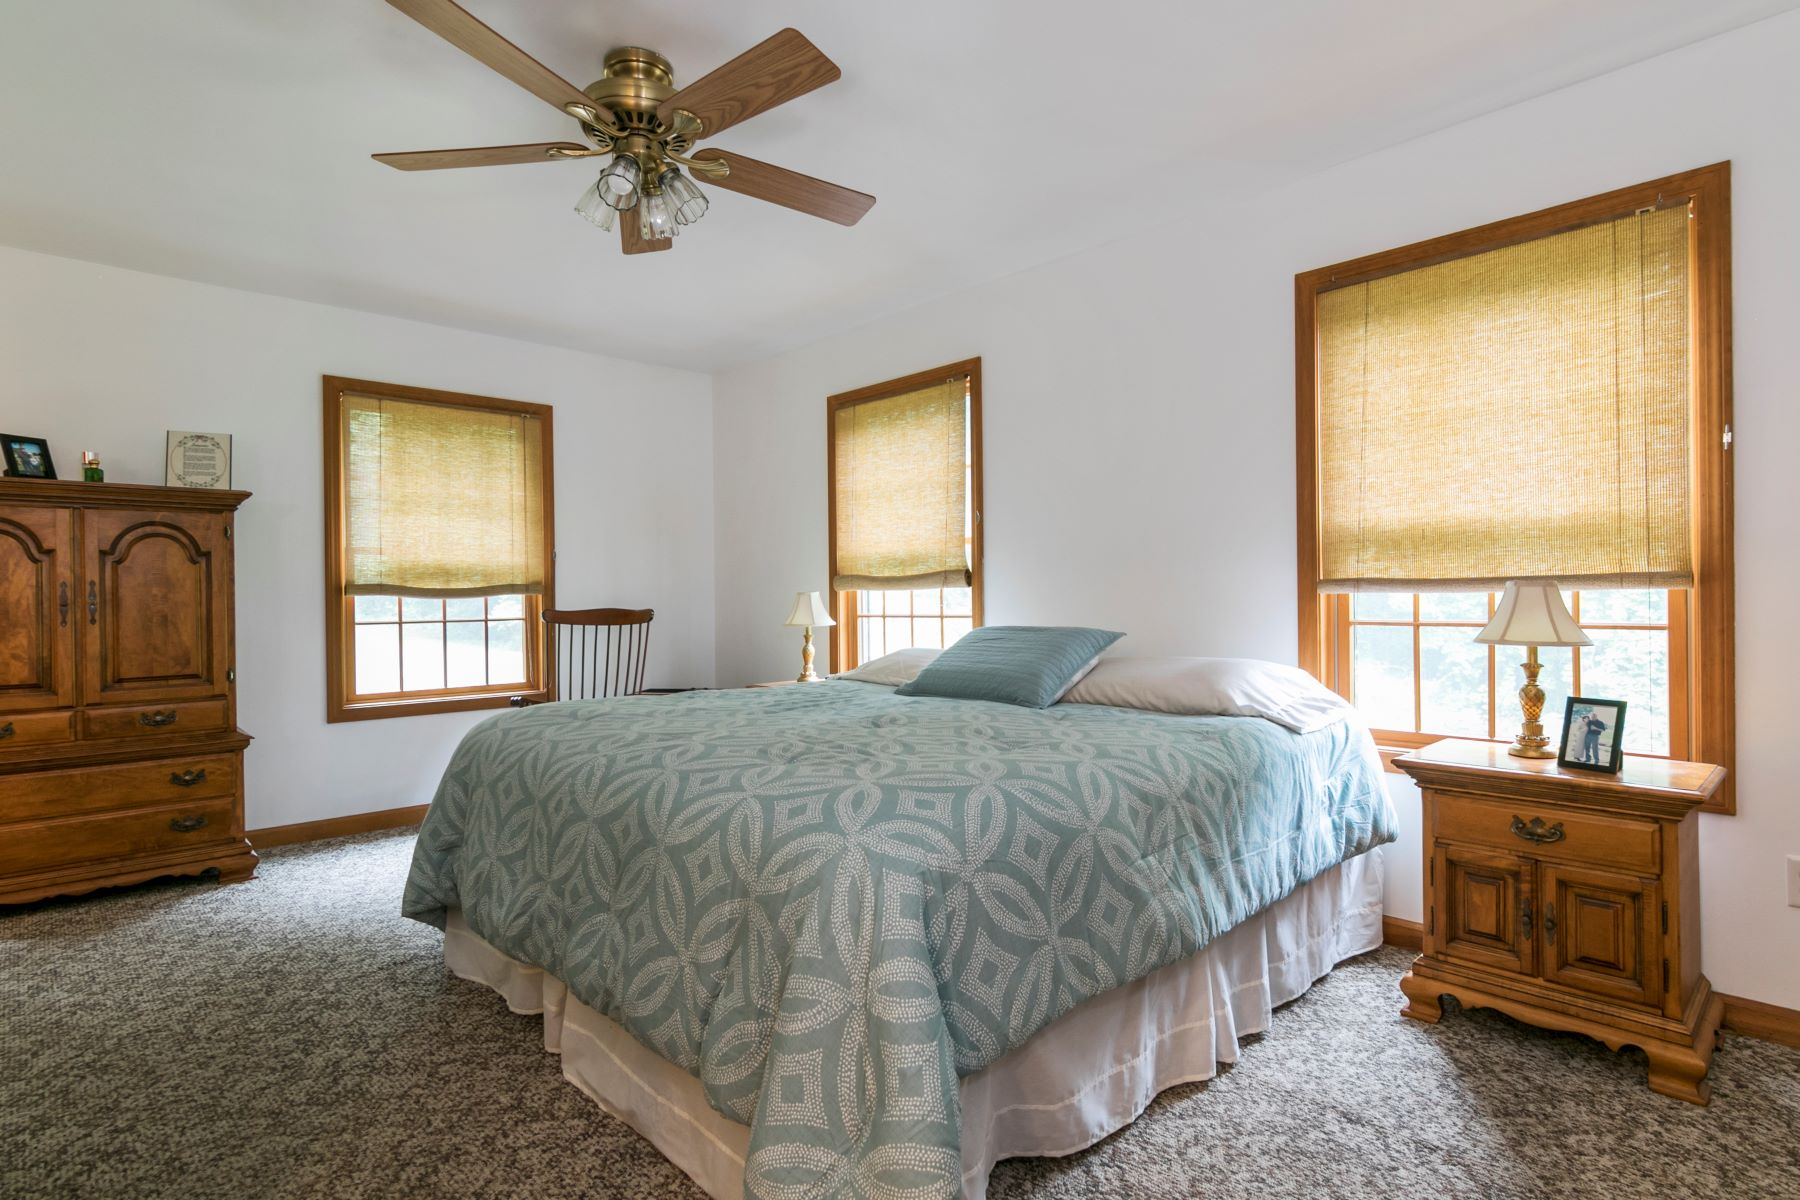 Additional photo for property listing at  Killingworth, Connecticut 06419 Hoa Kỳ